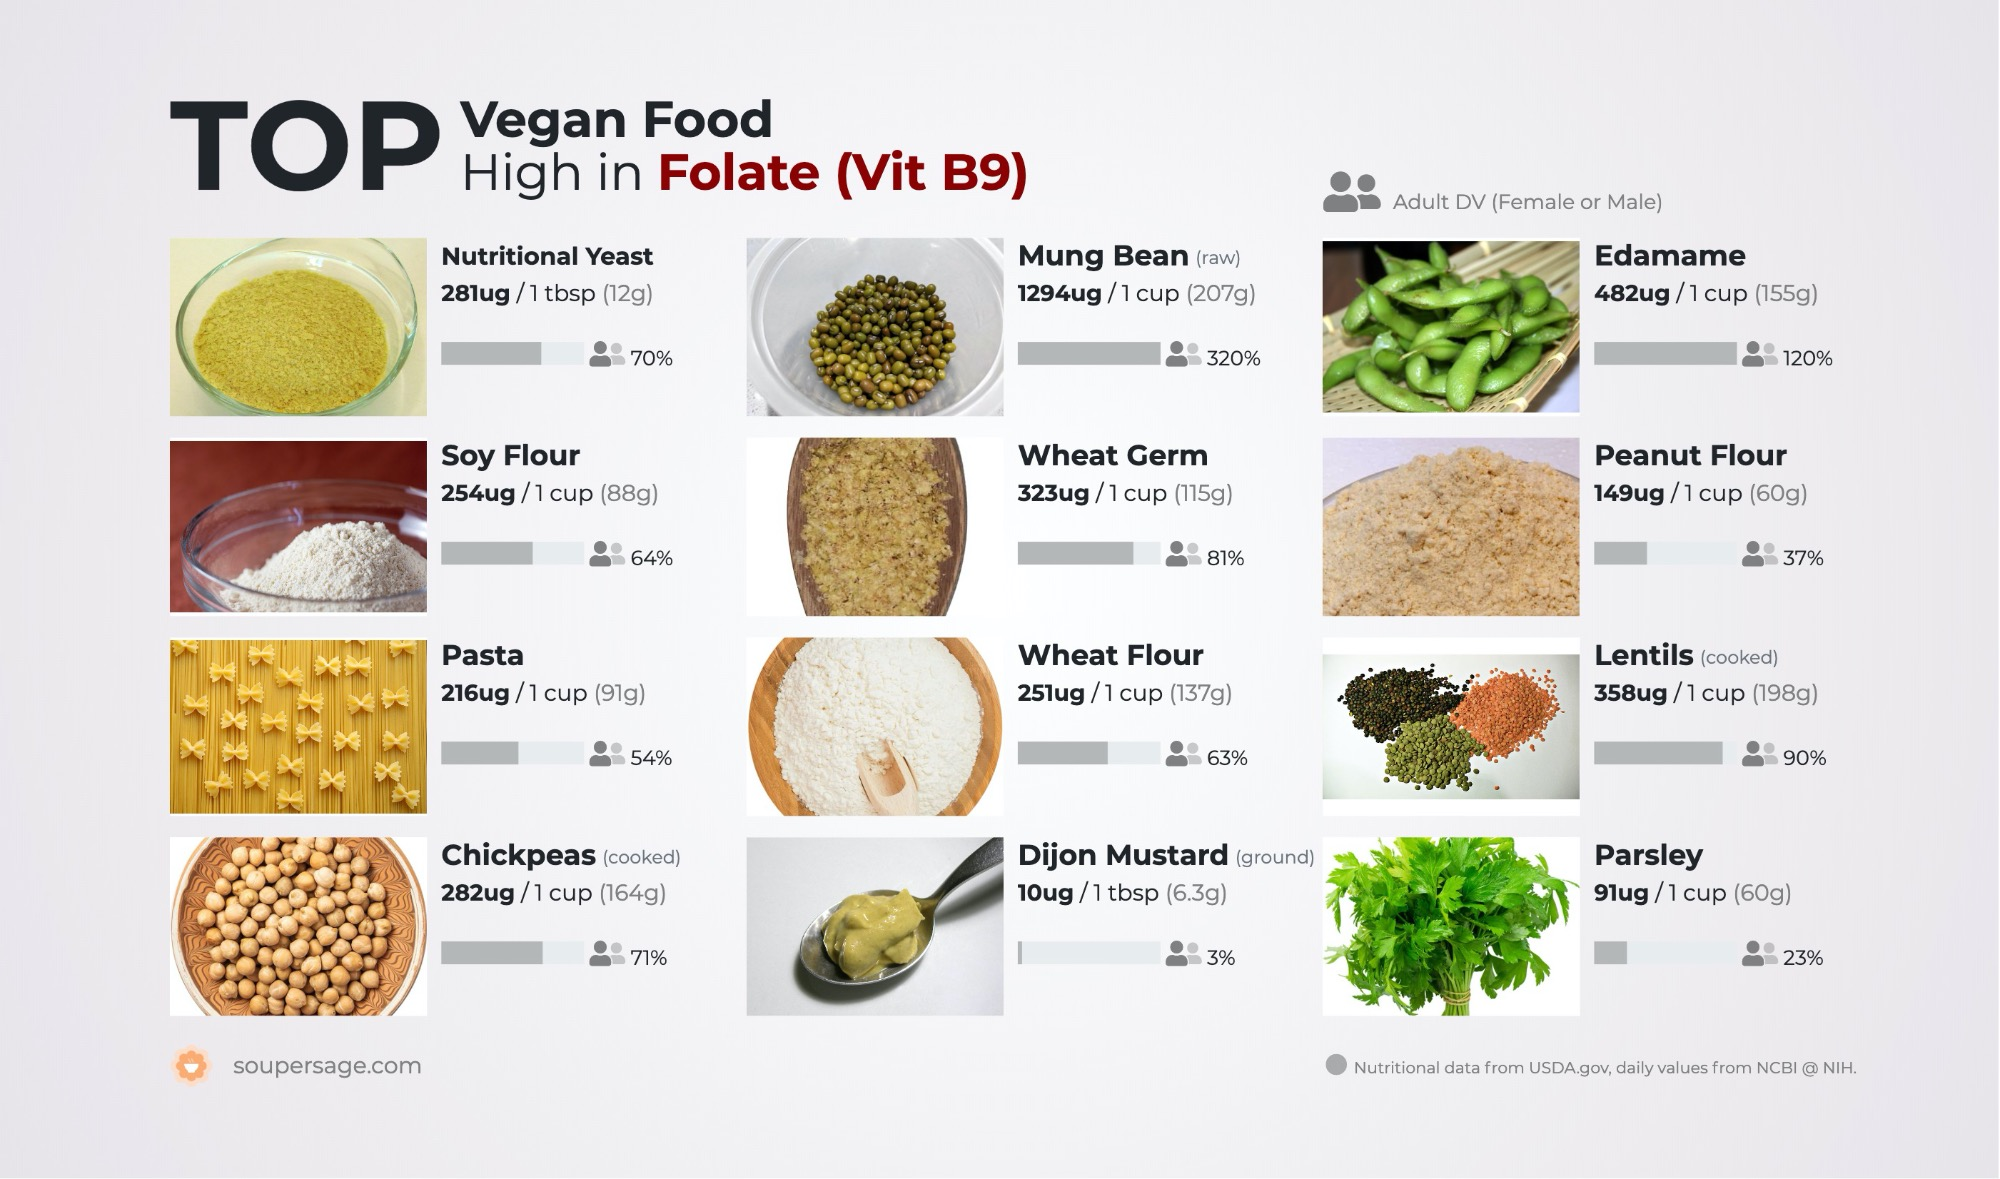 image of Top Vegan Food High in Folate (Vit B9)